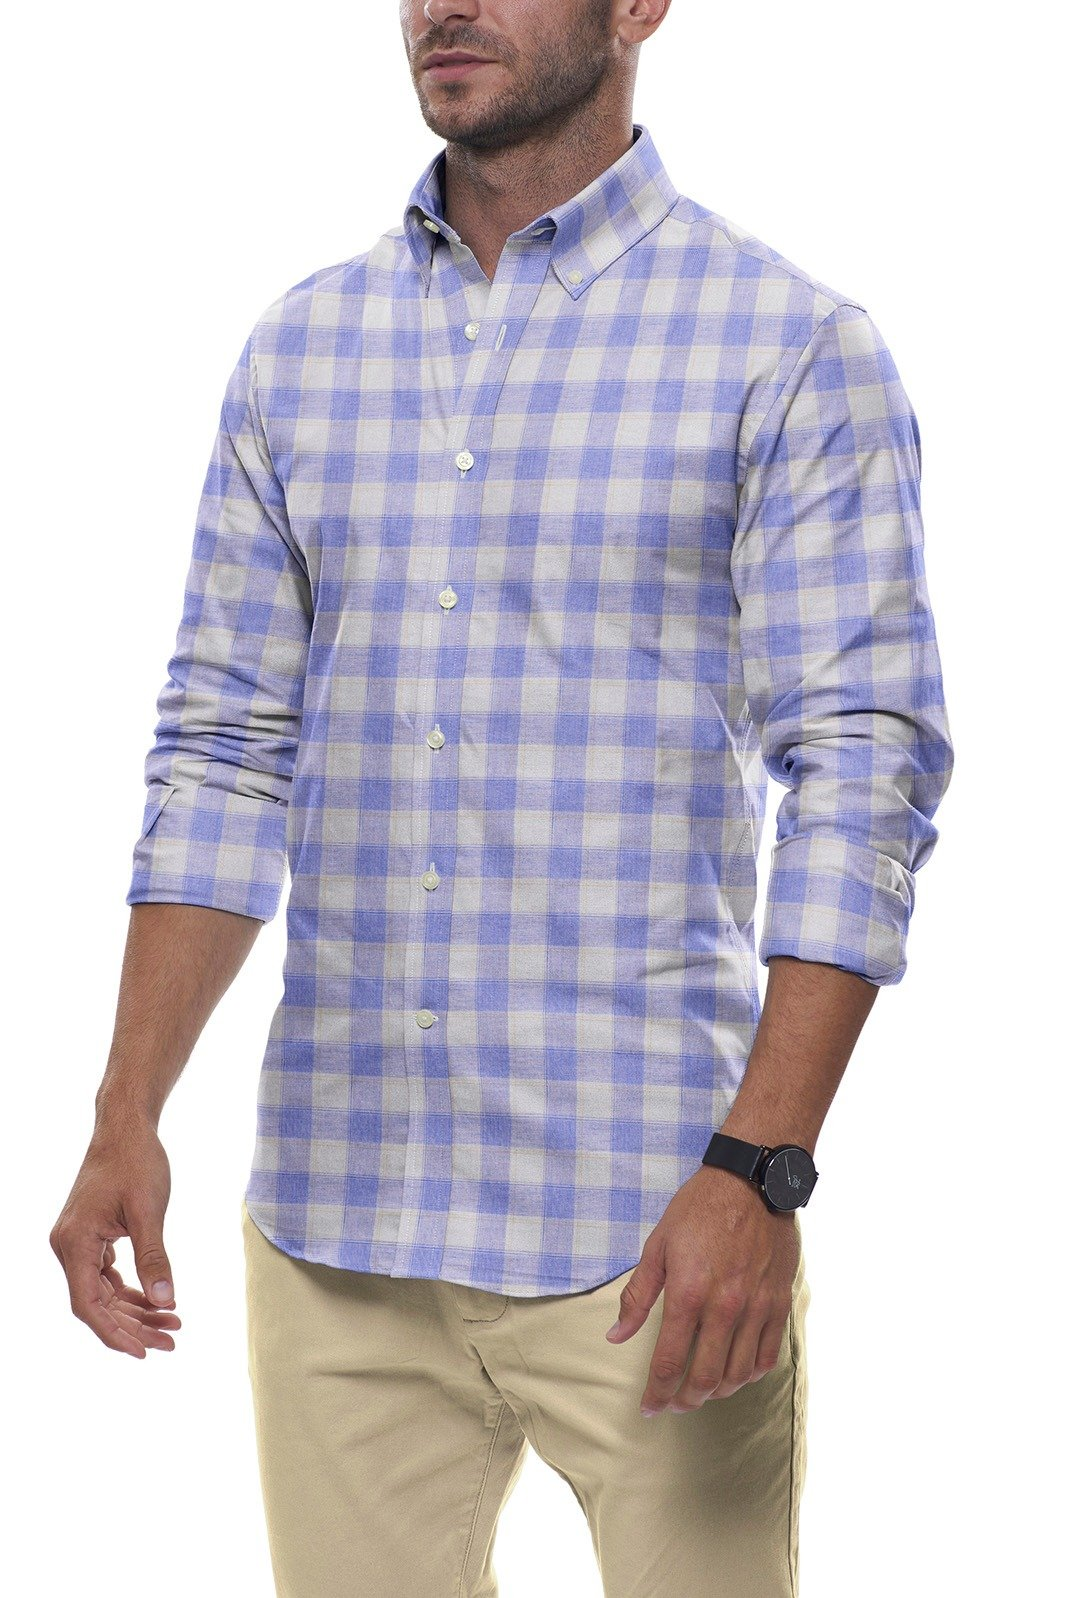 Light Blue and White Plaid Linen: Semi-Spread Collar, Long Sleeve